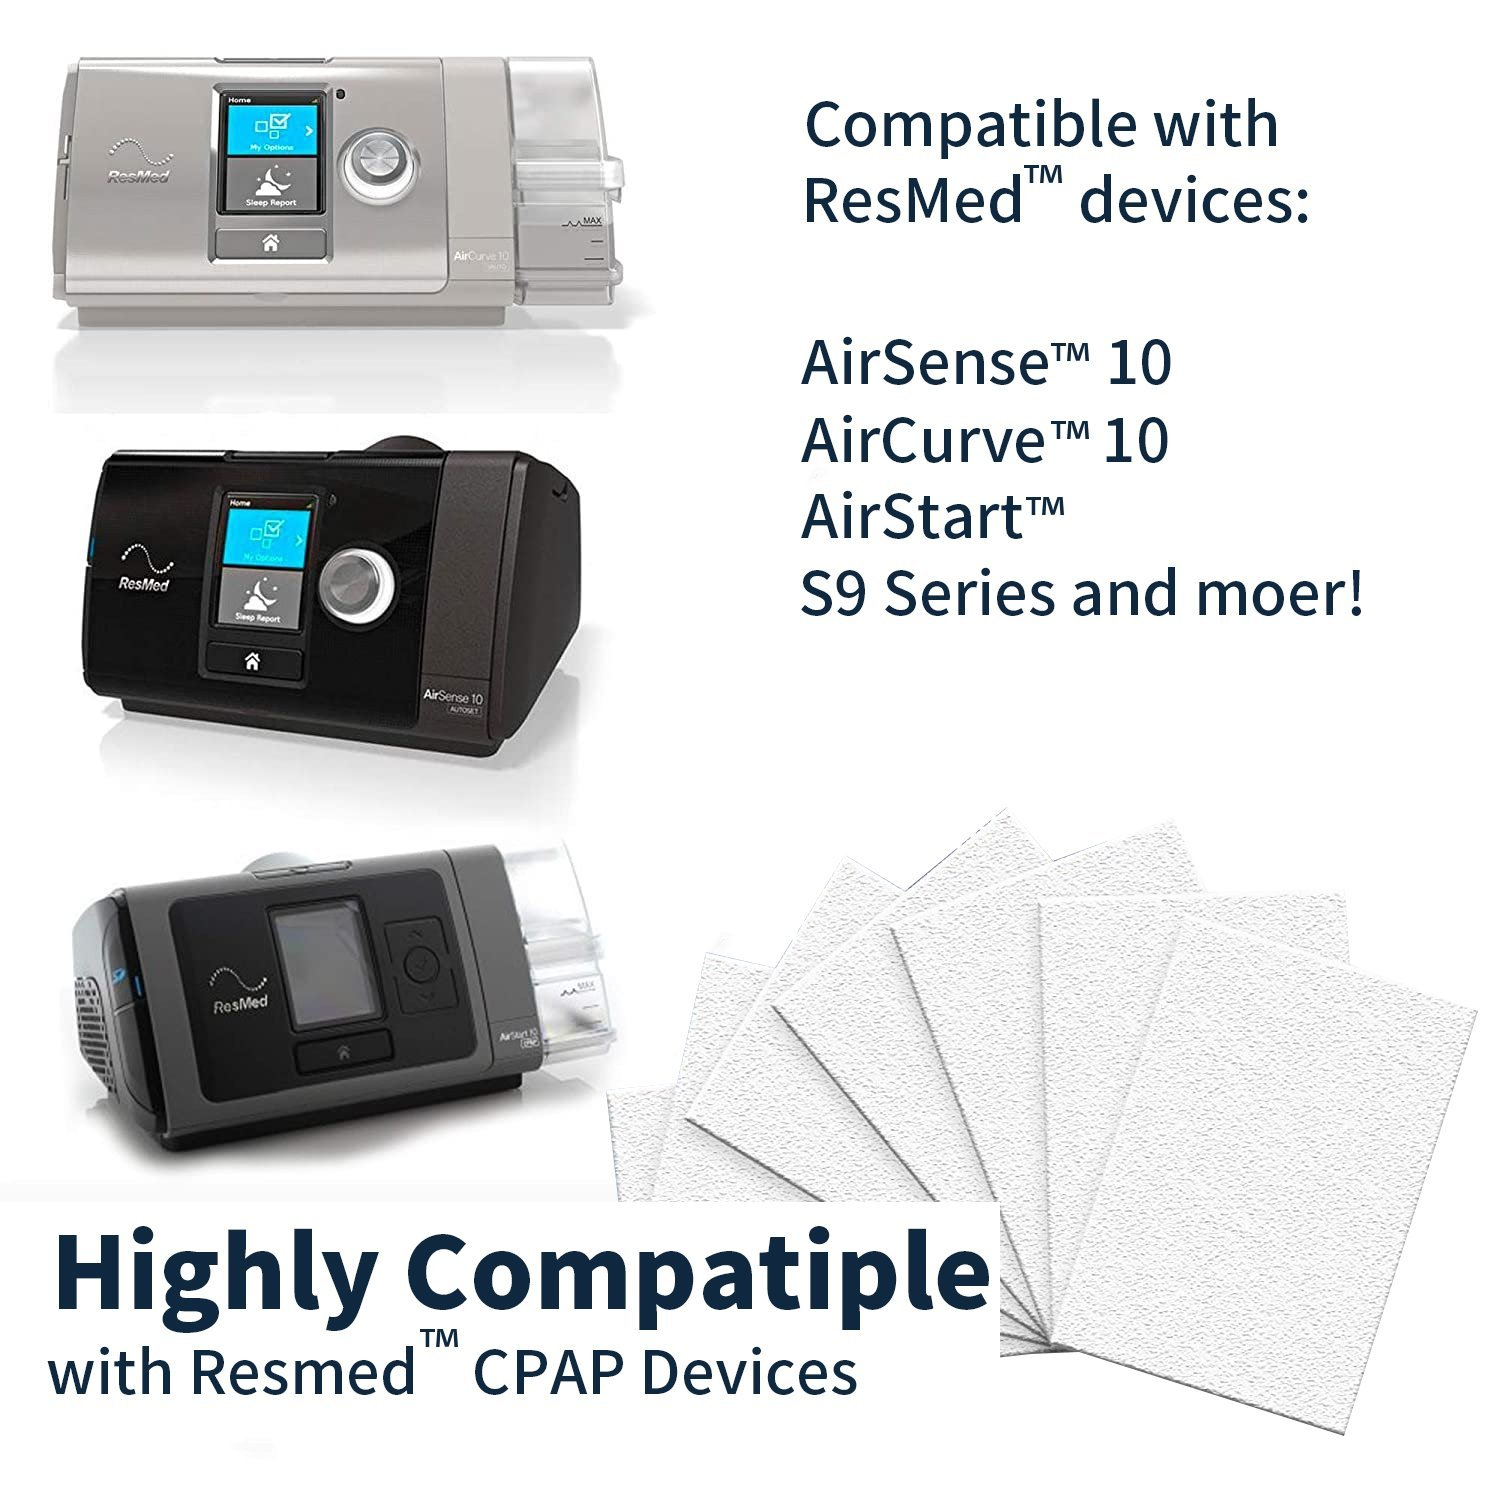 Resmed Cpap Machine Filter Kit(60 PACK) CPAP Supplies Ober Health 3